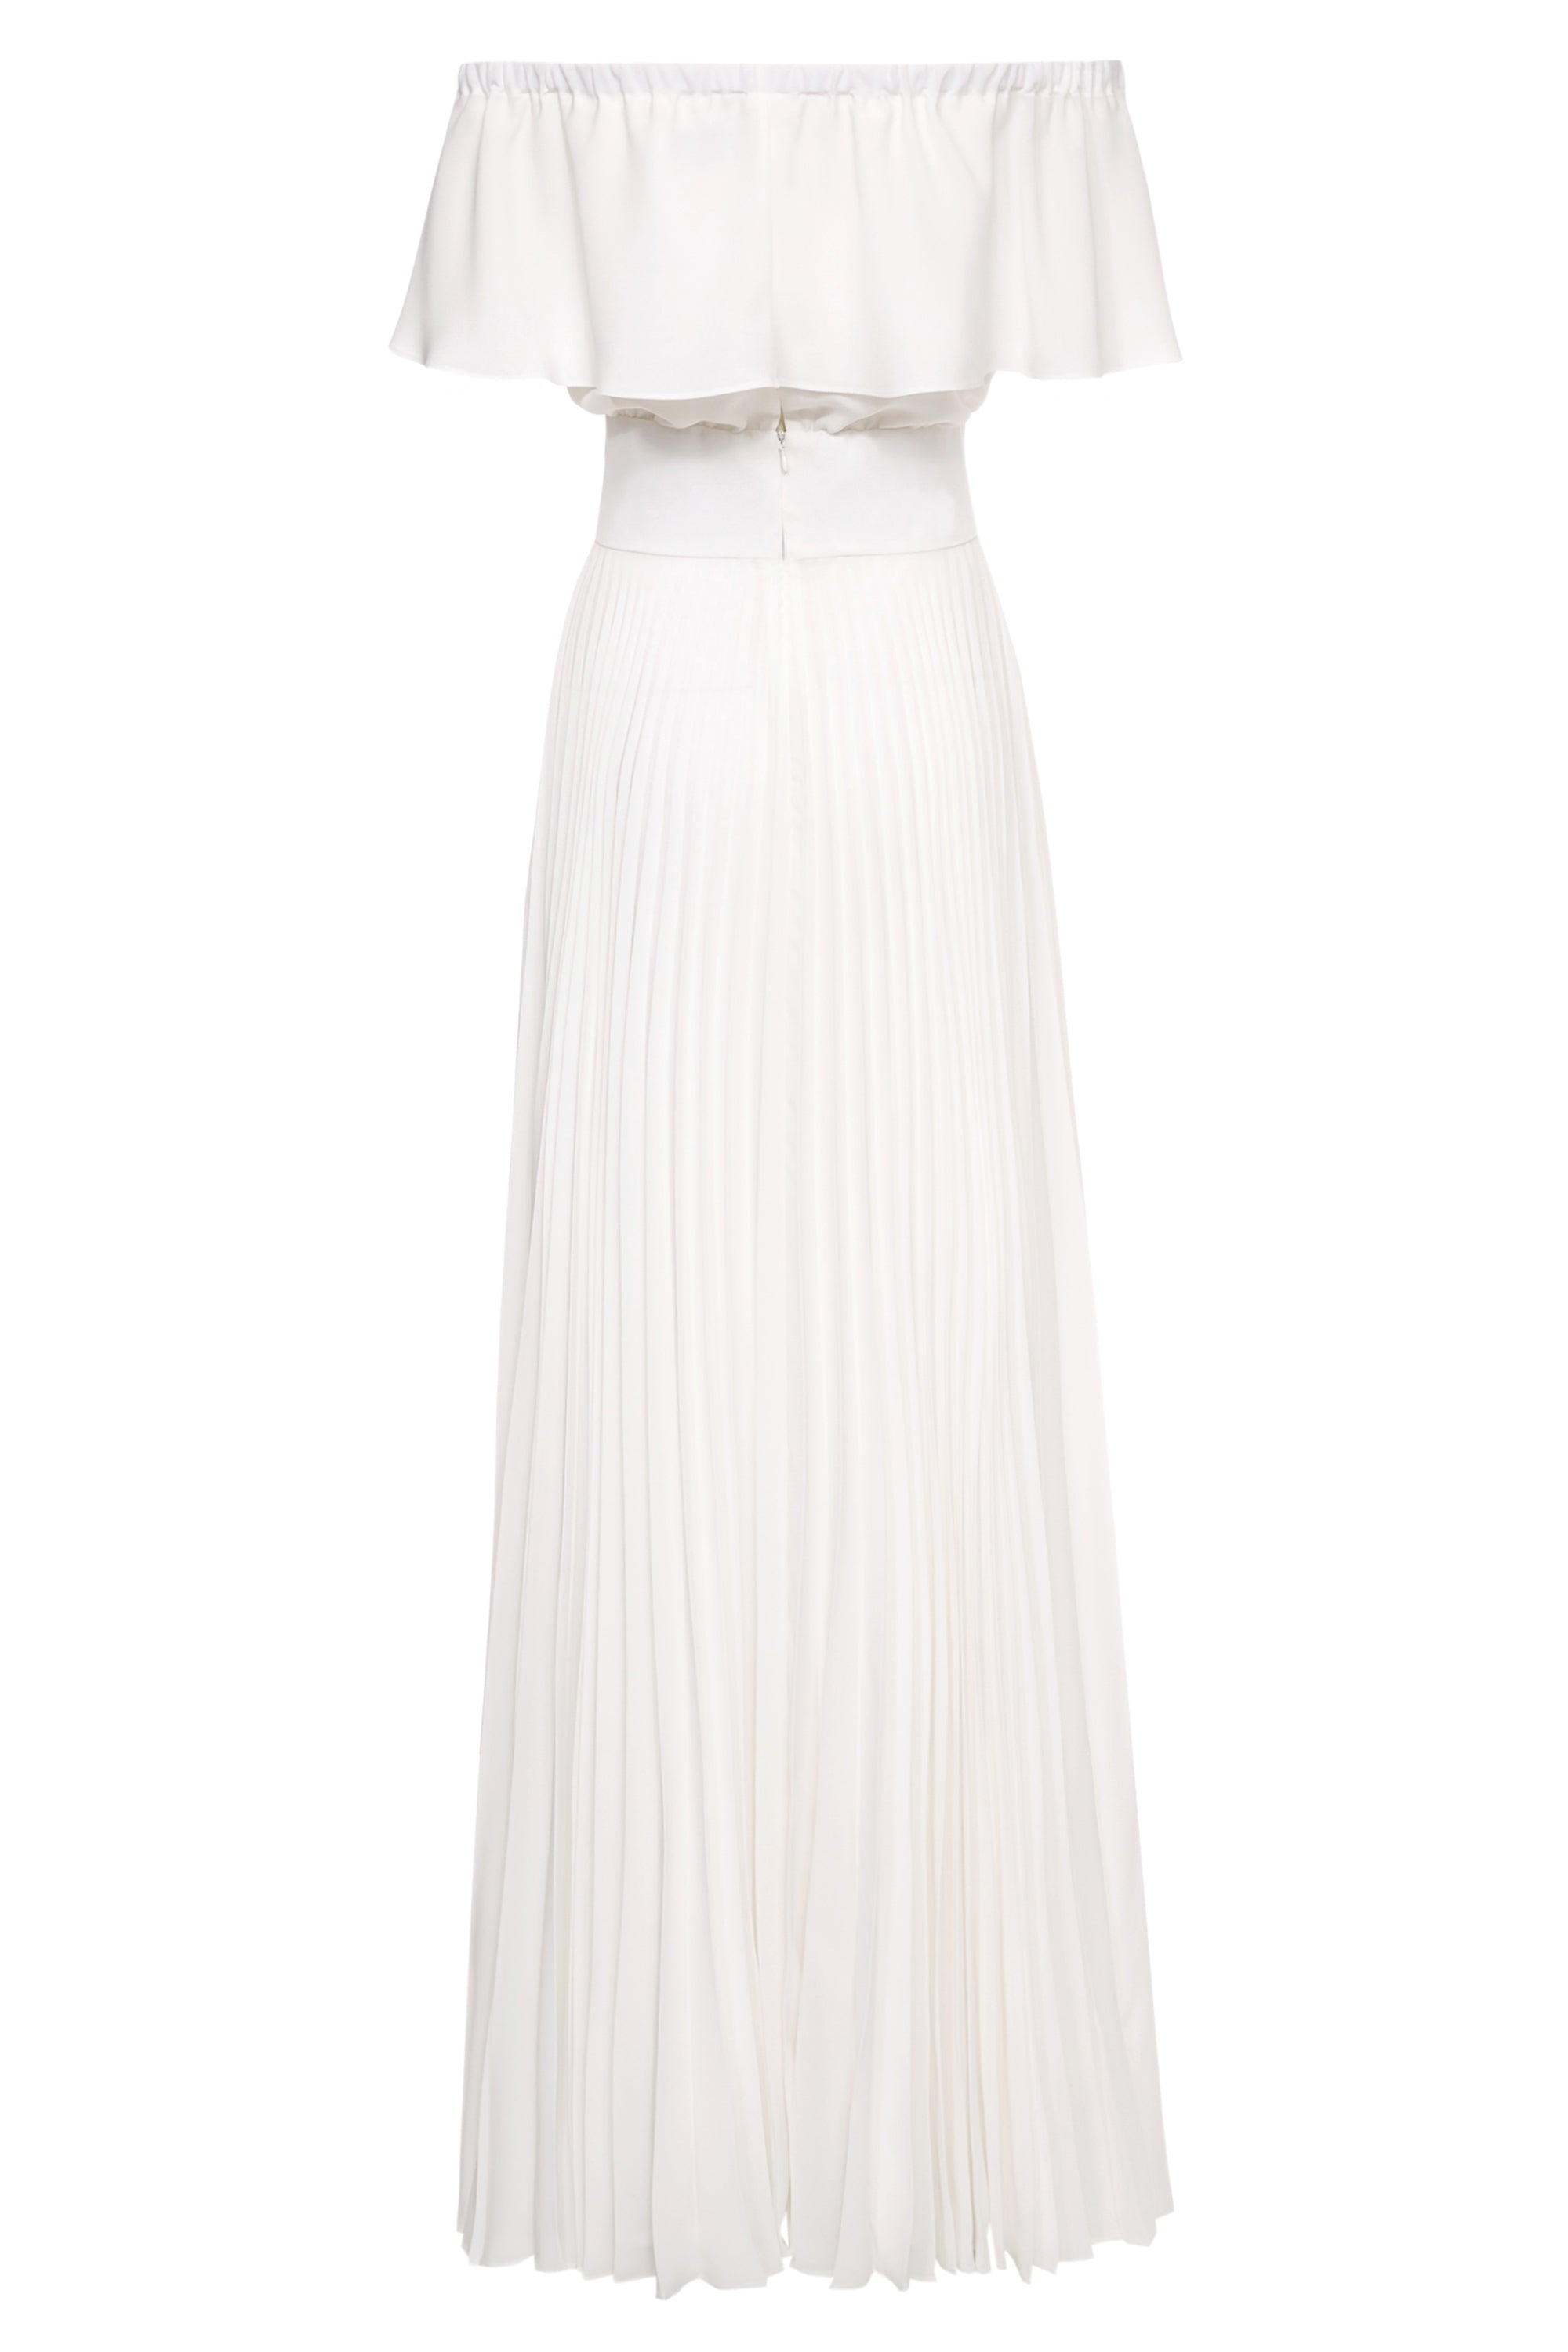 White Pleated Maxi Dress